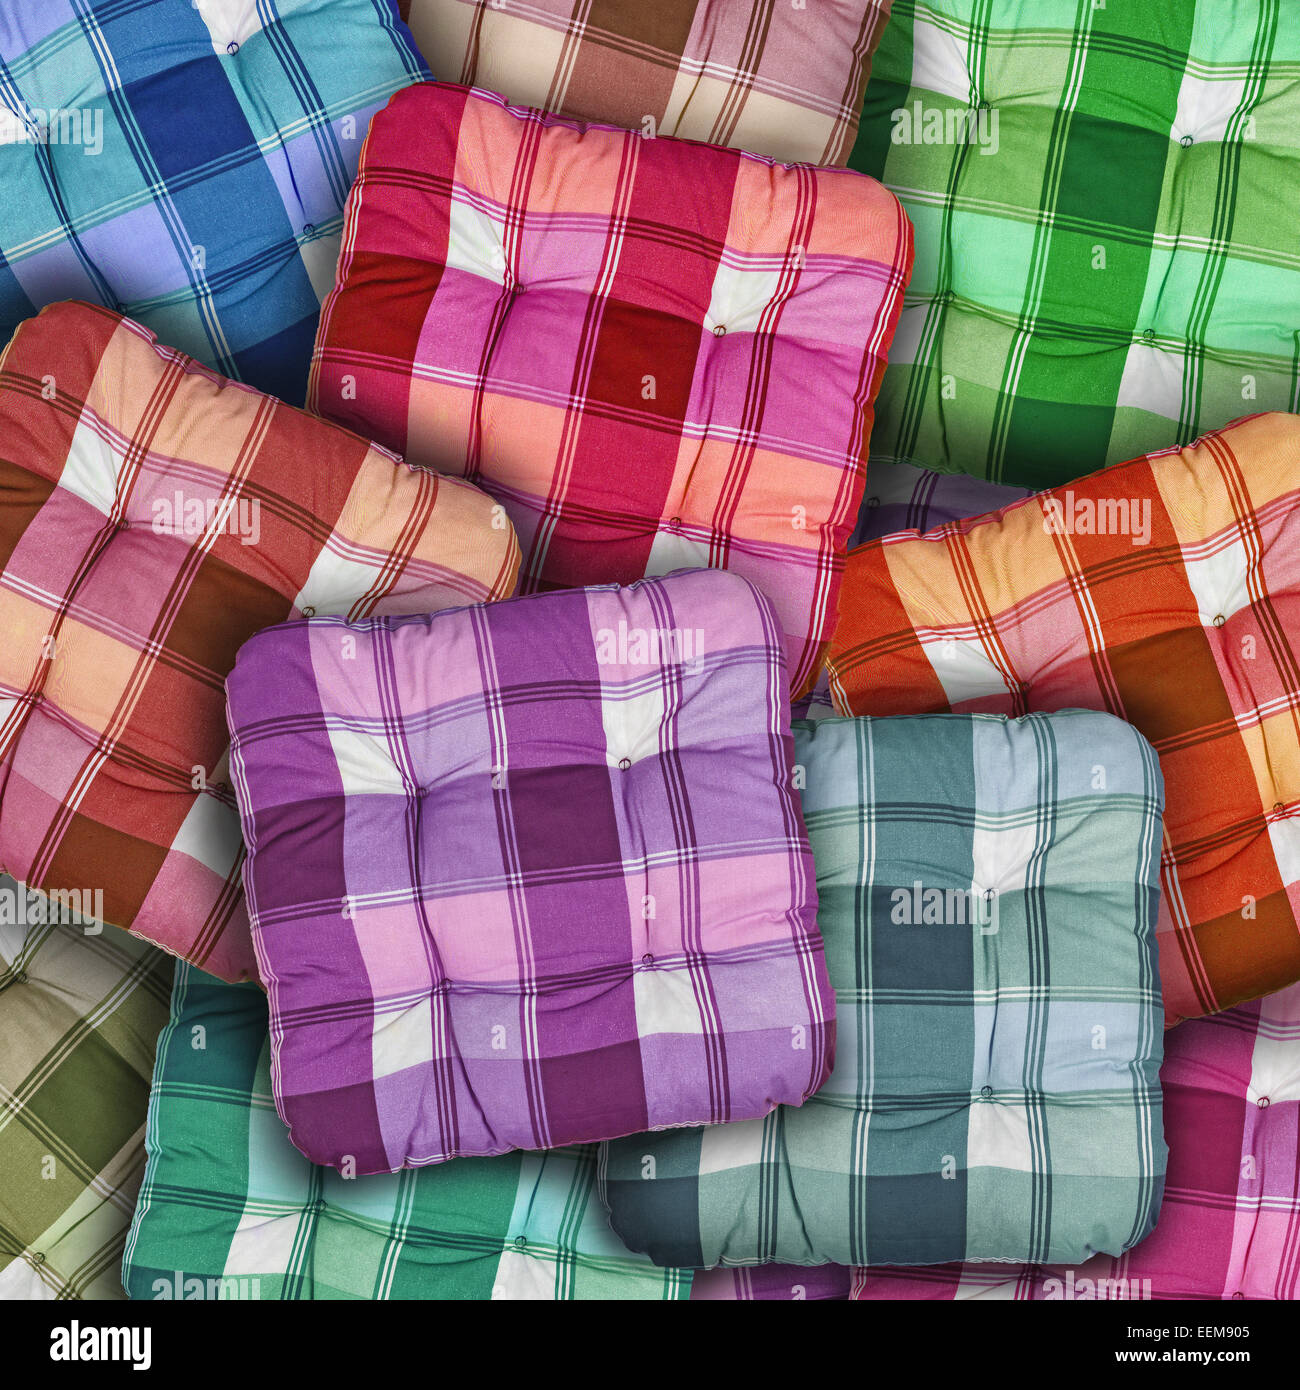 Pile Of Cushions Stockfotos & Pile Of Cushions Bilder - Alamy